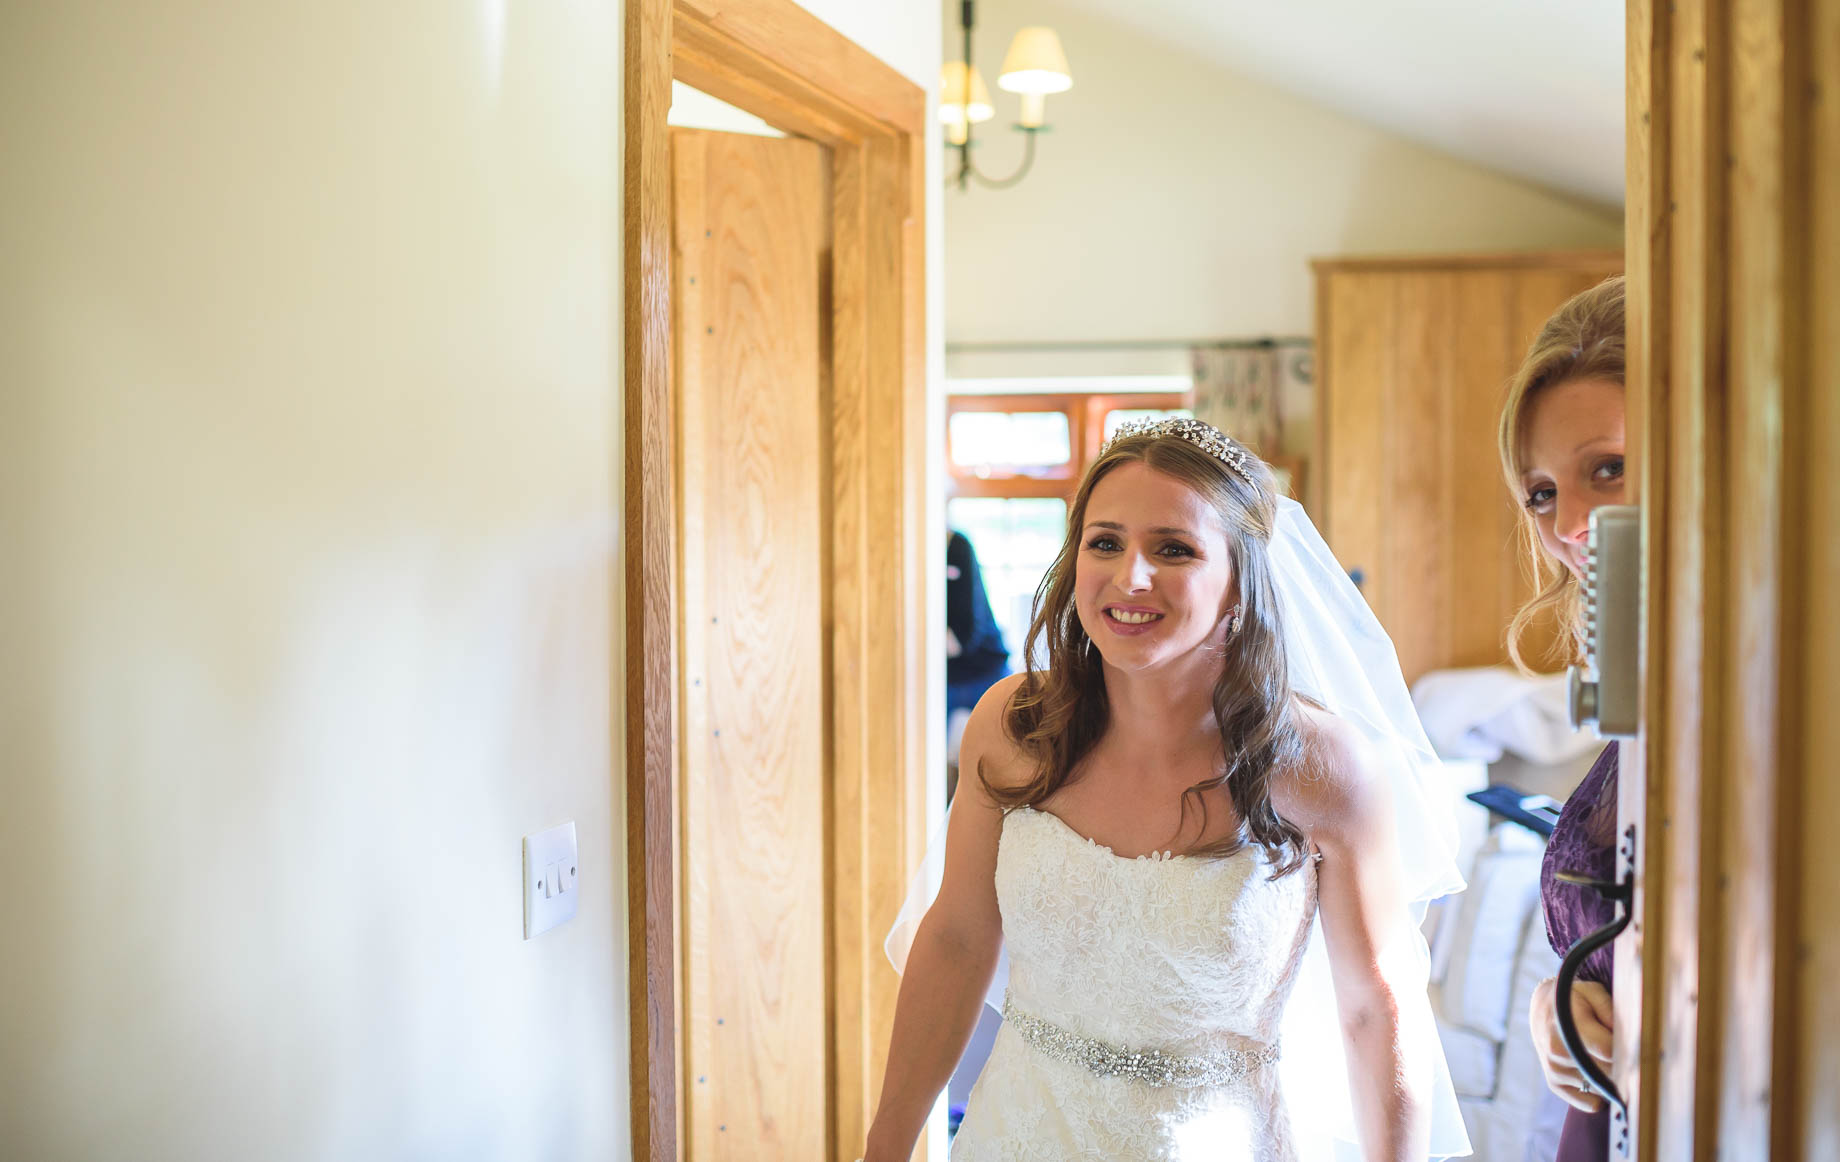 Gate Street Barn wedding photography - Guy Collier - Claire and Andy (42 of 192)